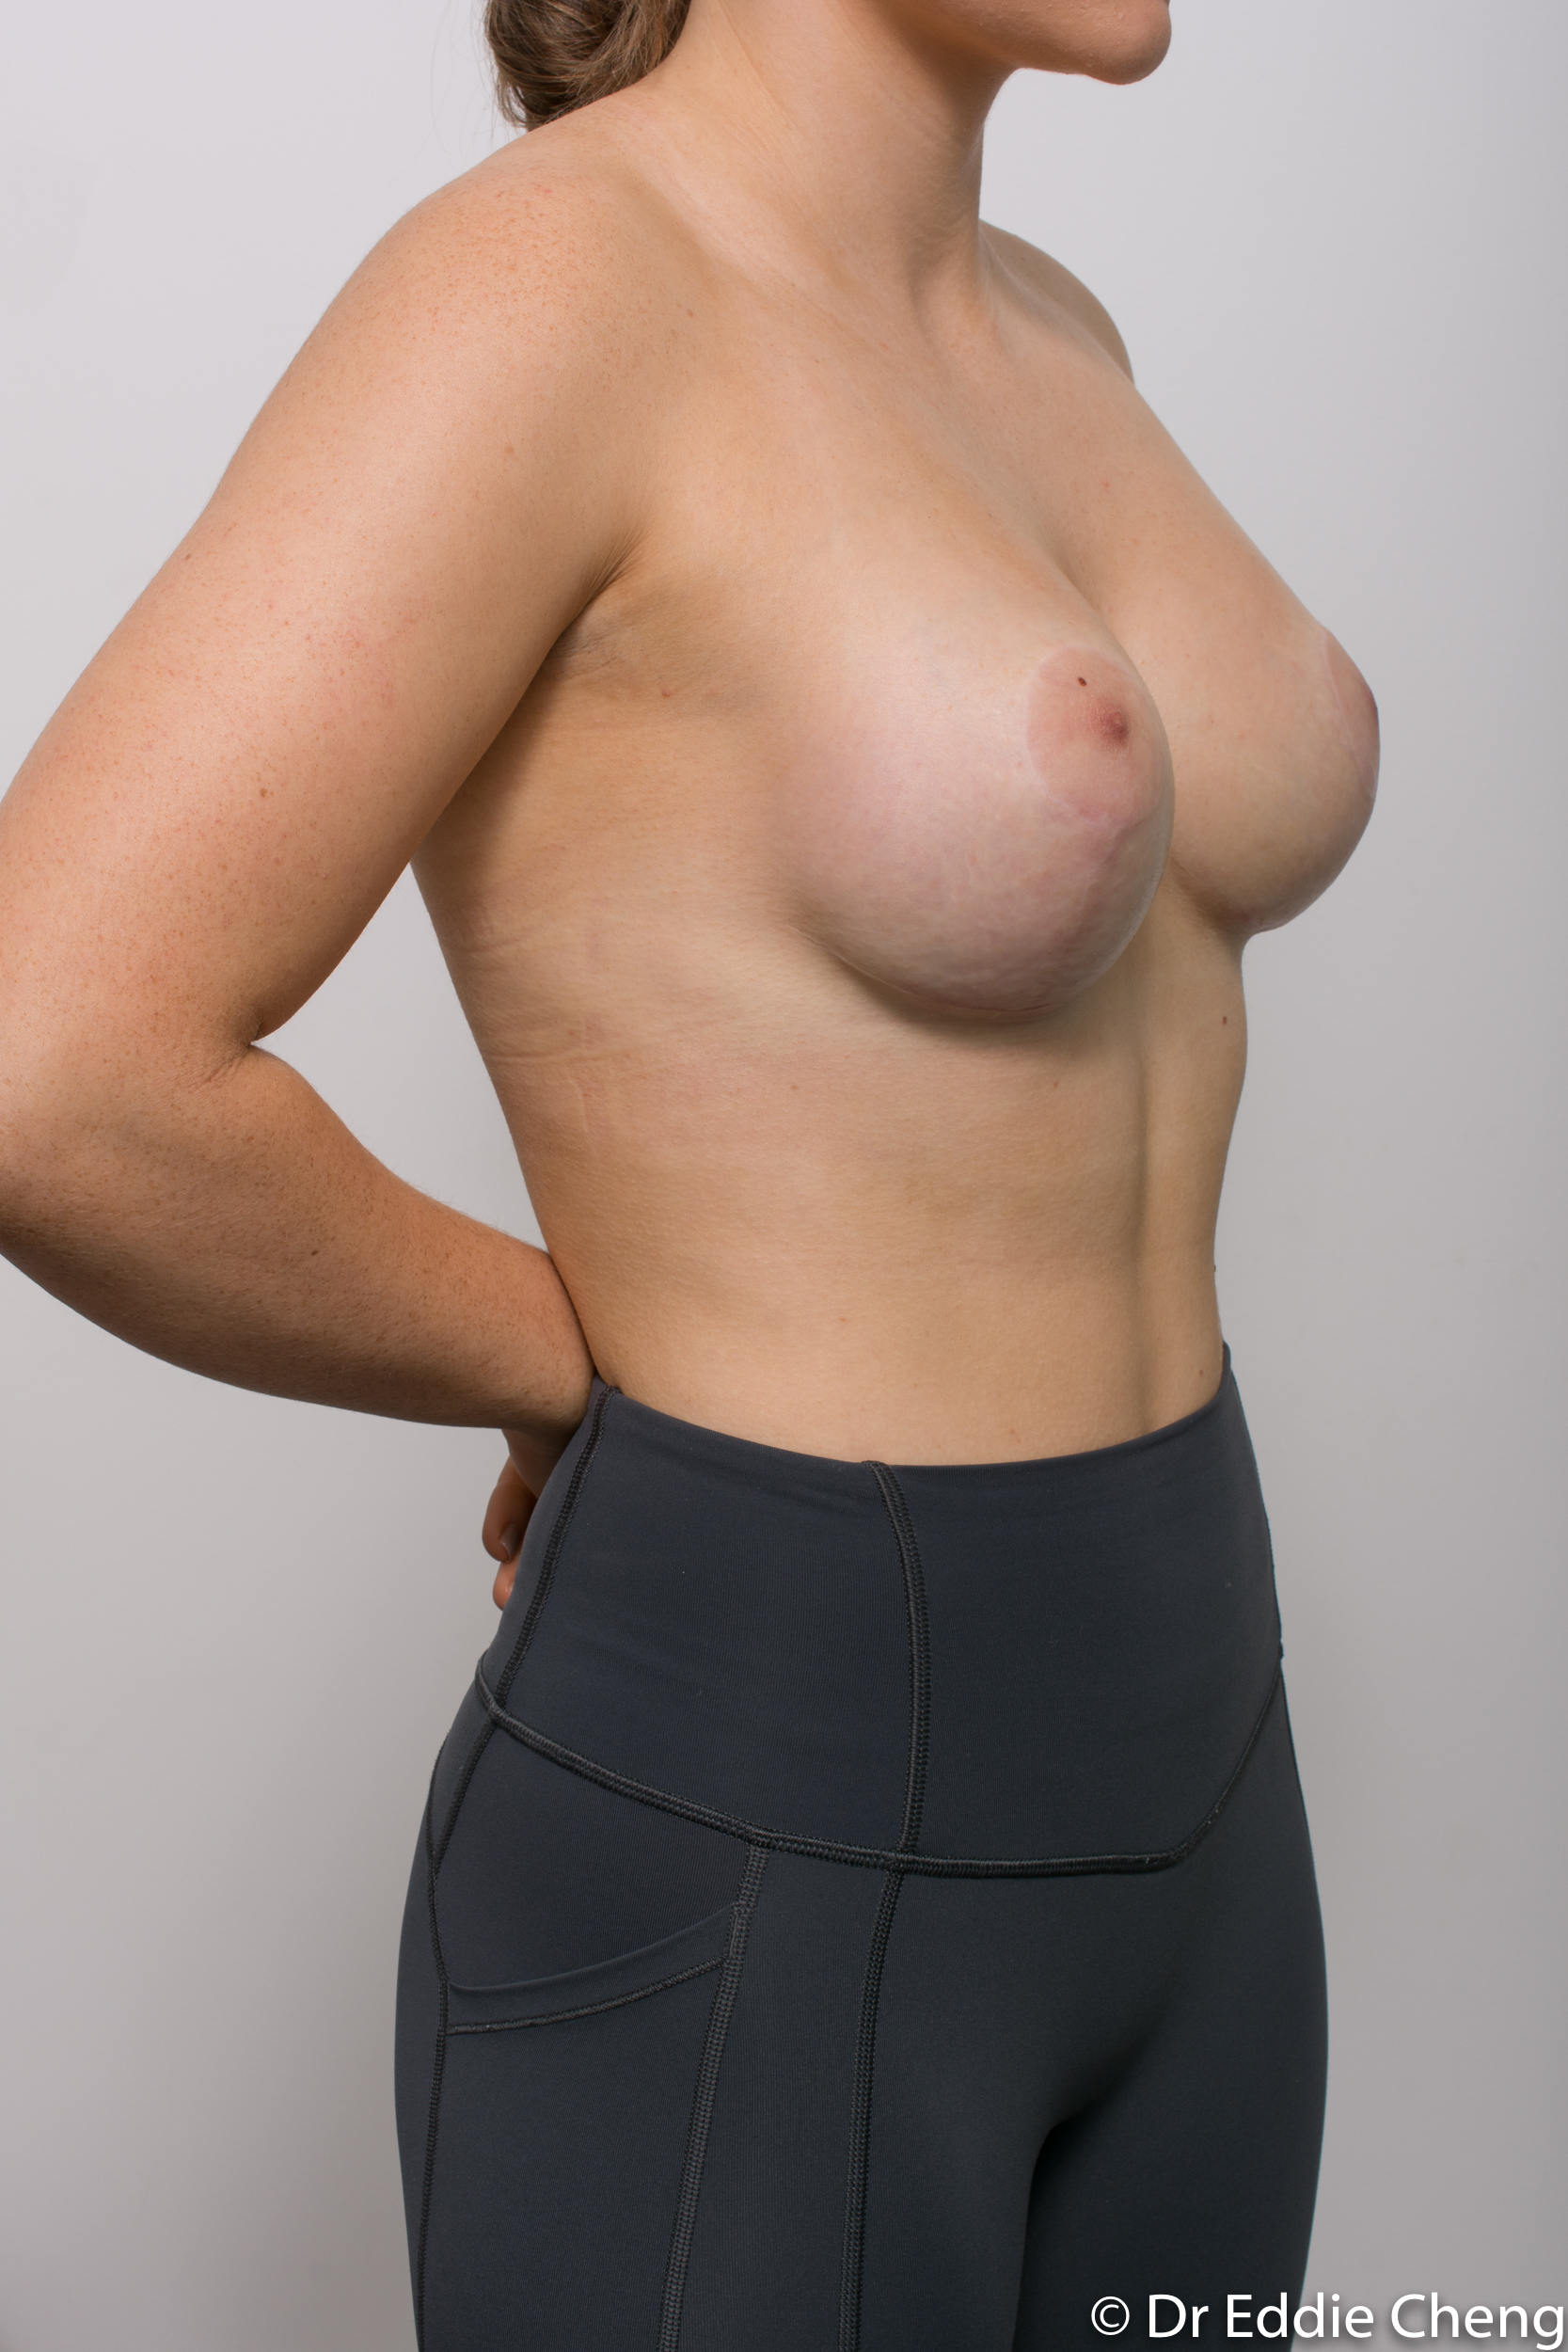 2 stage procedure tuberous breasts dr eddie cheng brisbane surgeon pre and post operative images -4-2